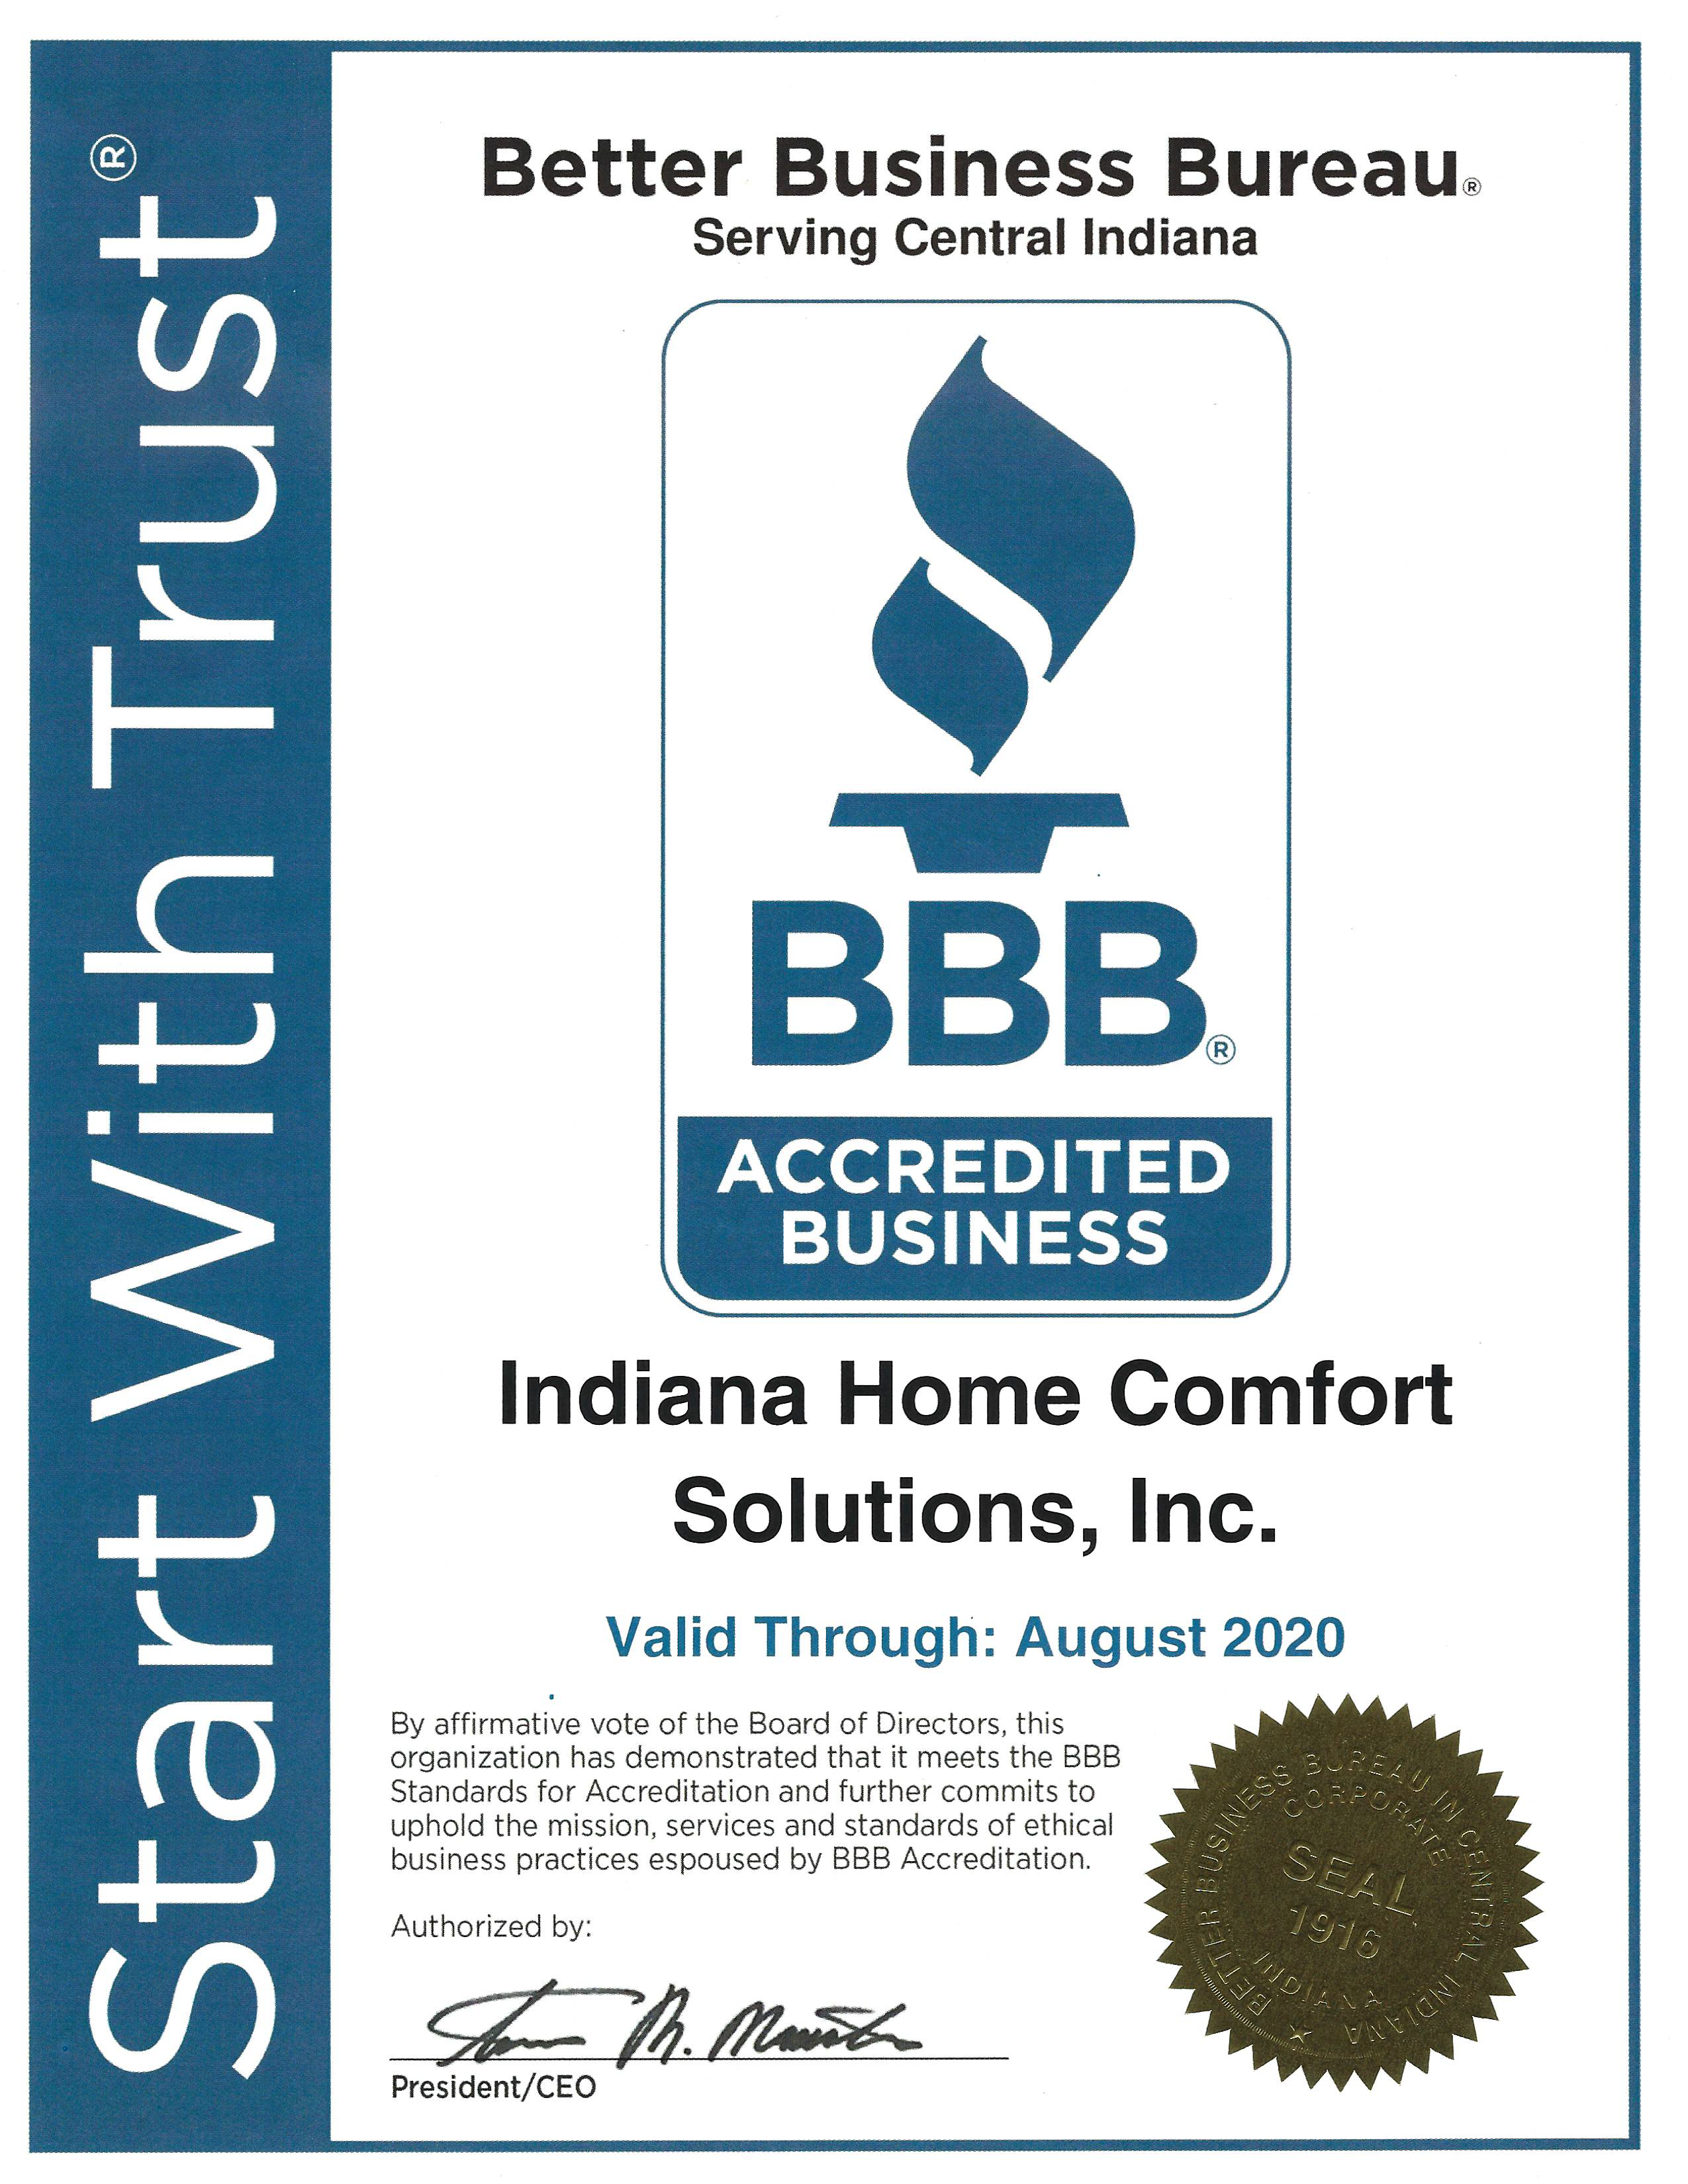 BBB Accredited Business 2020